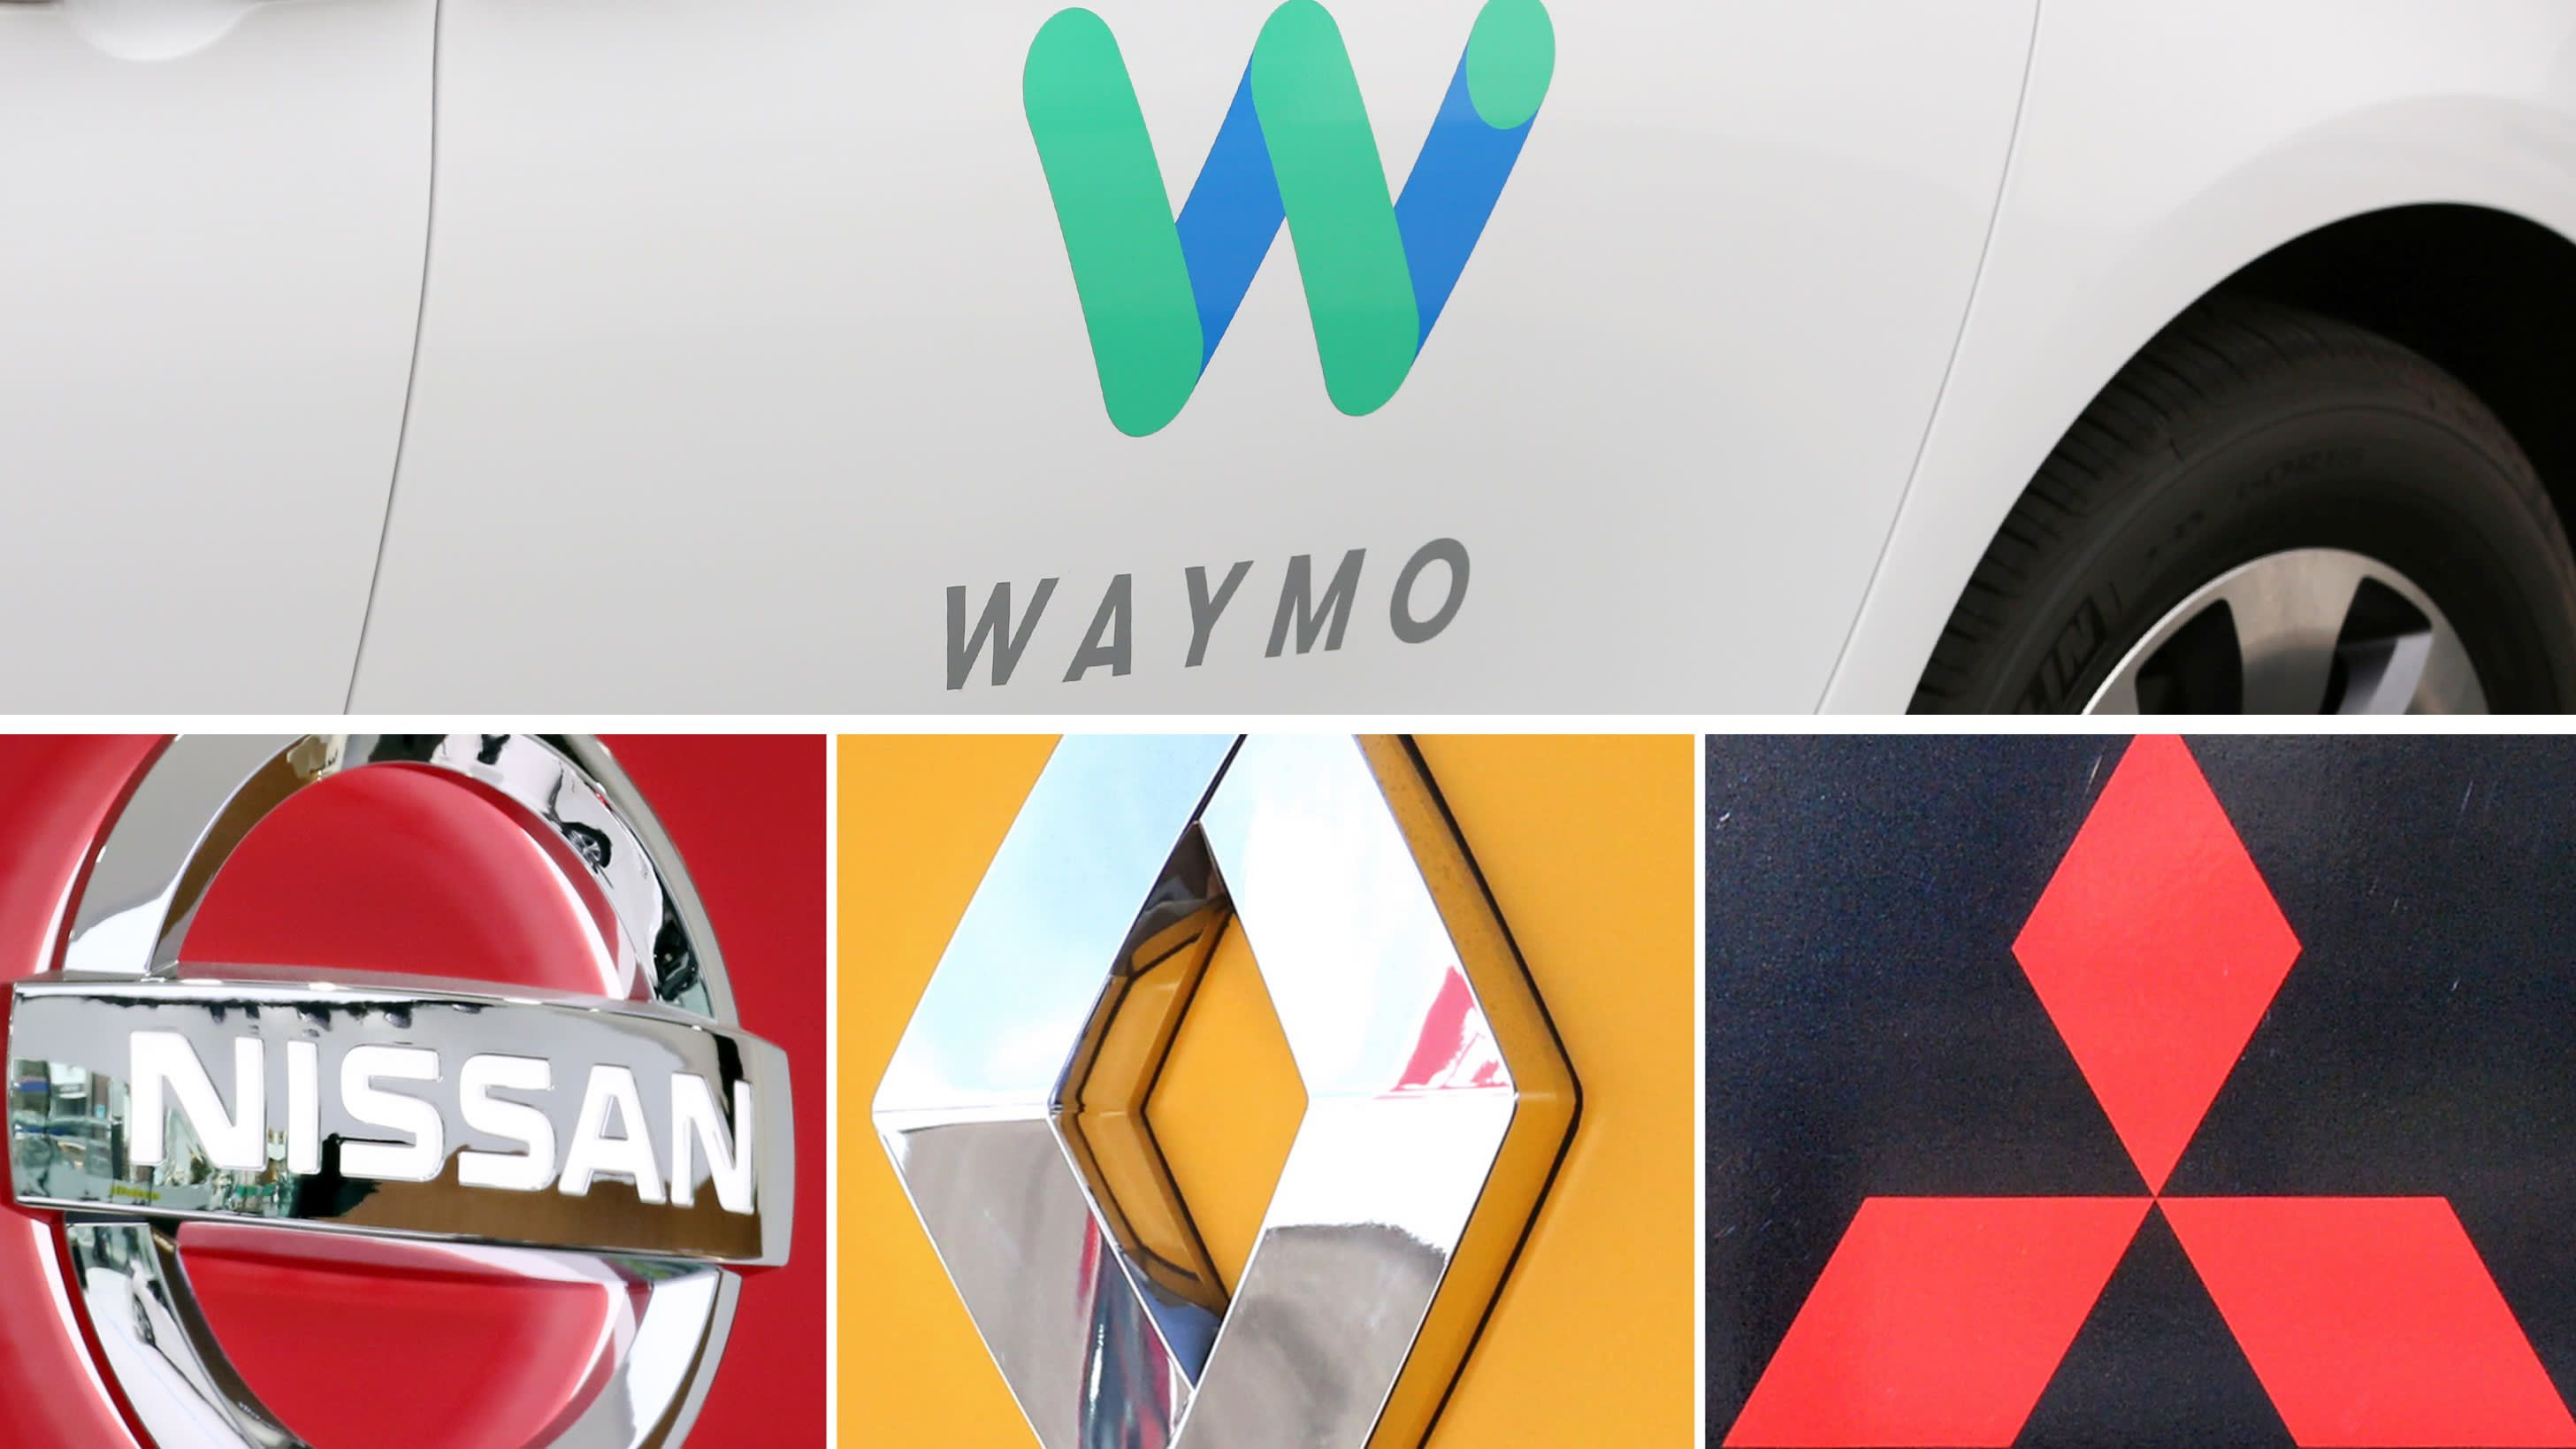 Waymo Logo - Nissan-Renault alliance to join Google on self-driving cars - Nikkei ...